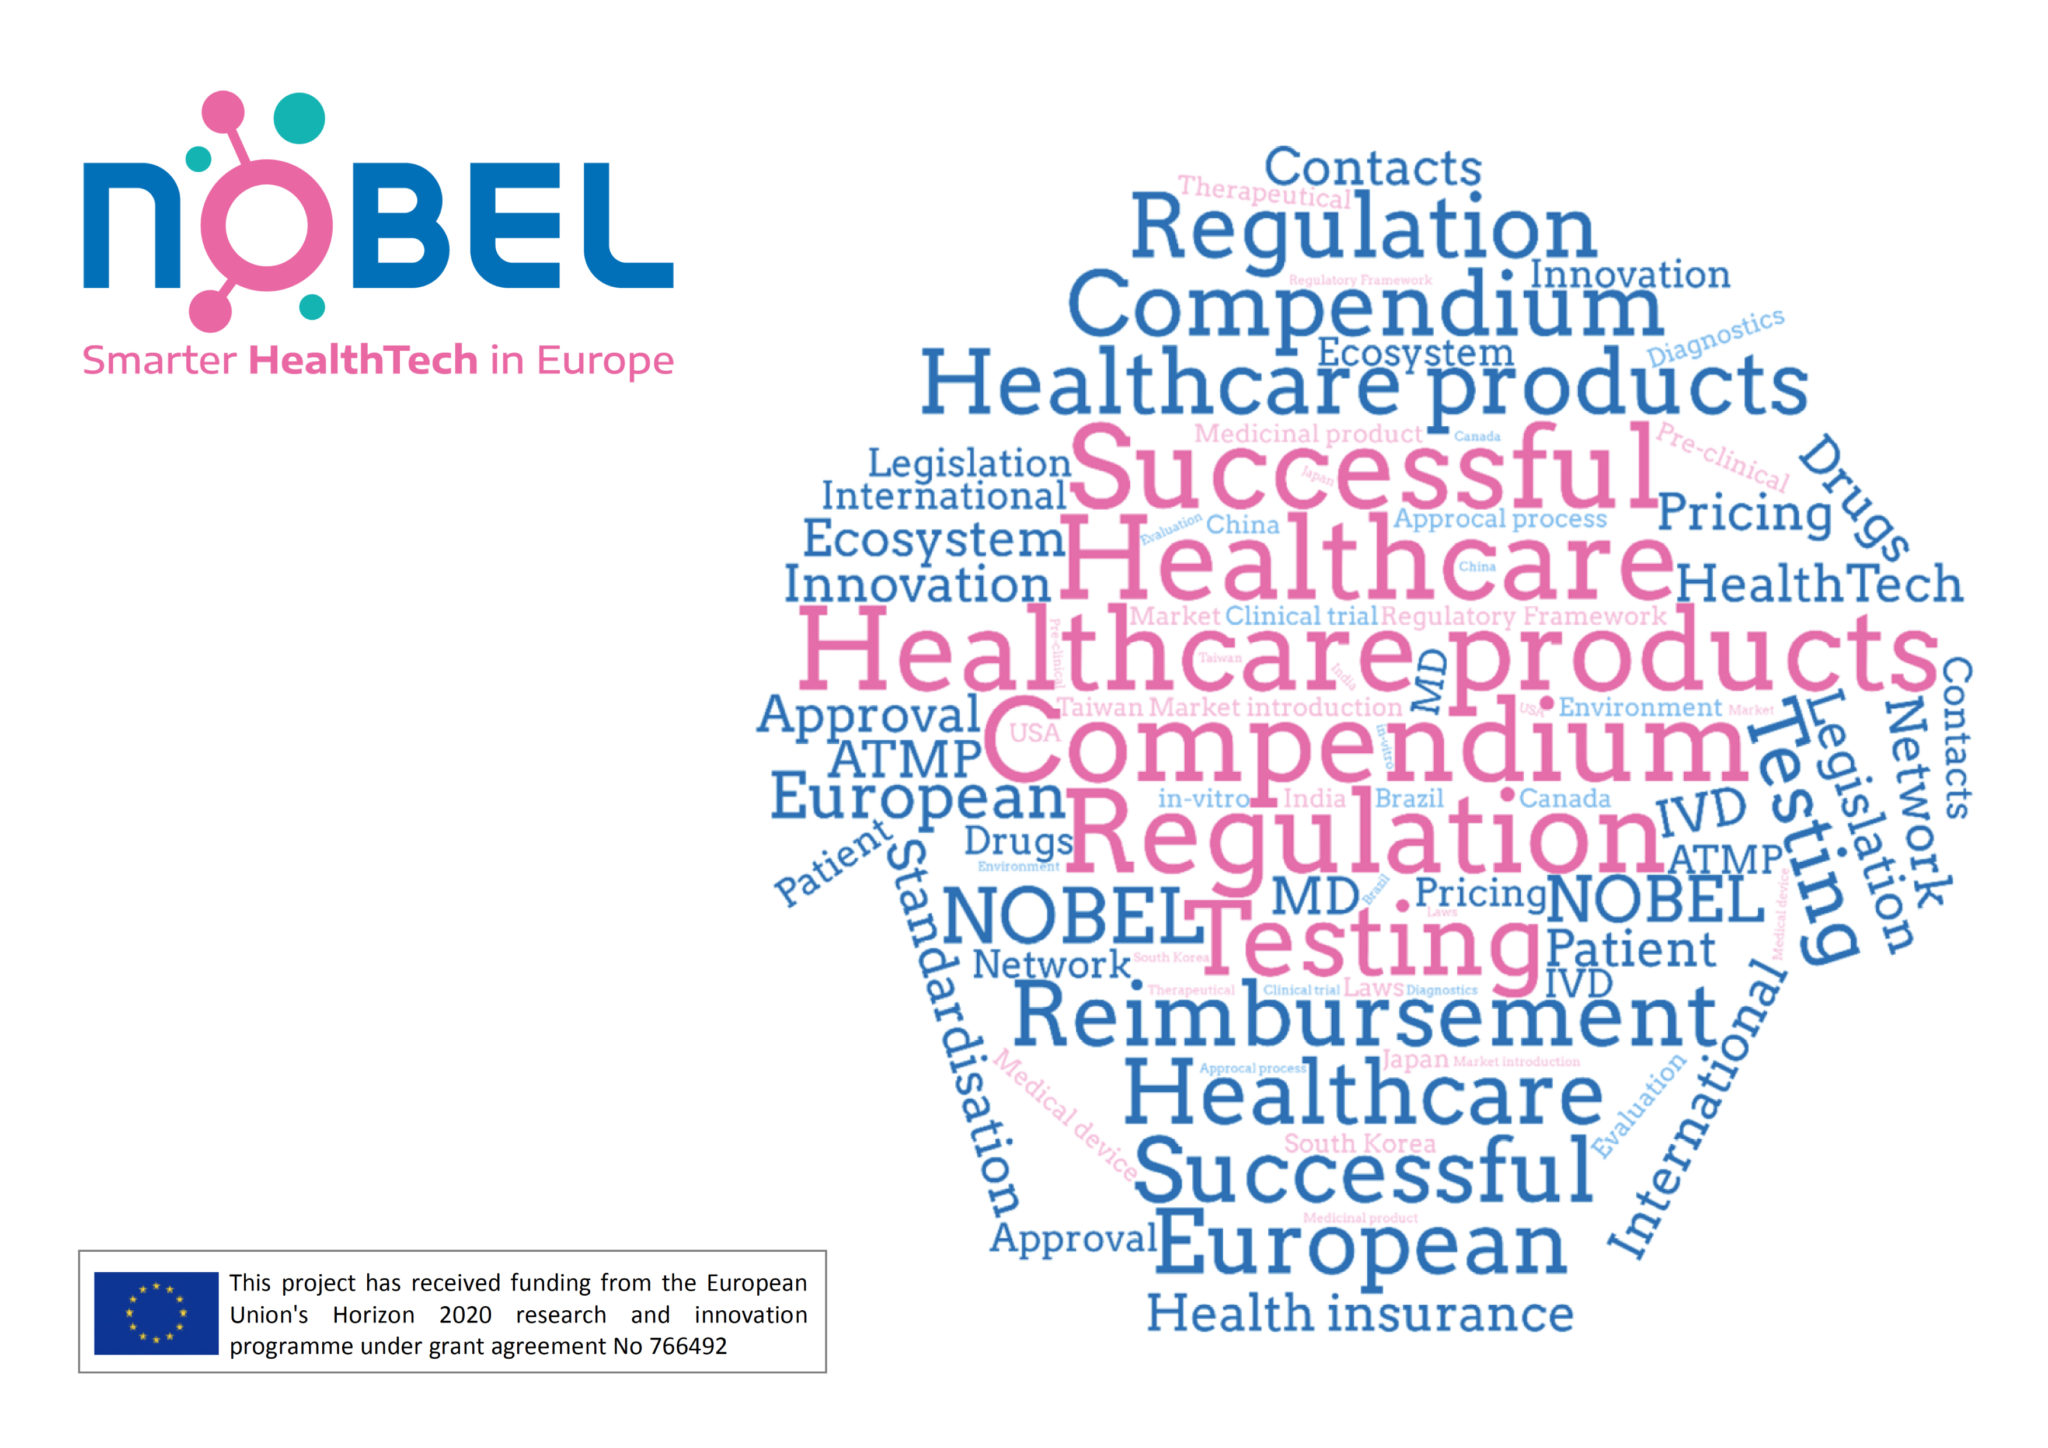 NEW RELEASE: The NOBEL Project's compendium about the testing, regulation & reimbursement of healthcare products.